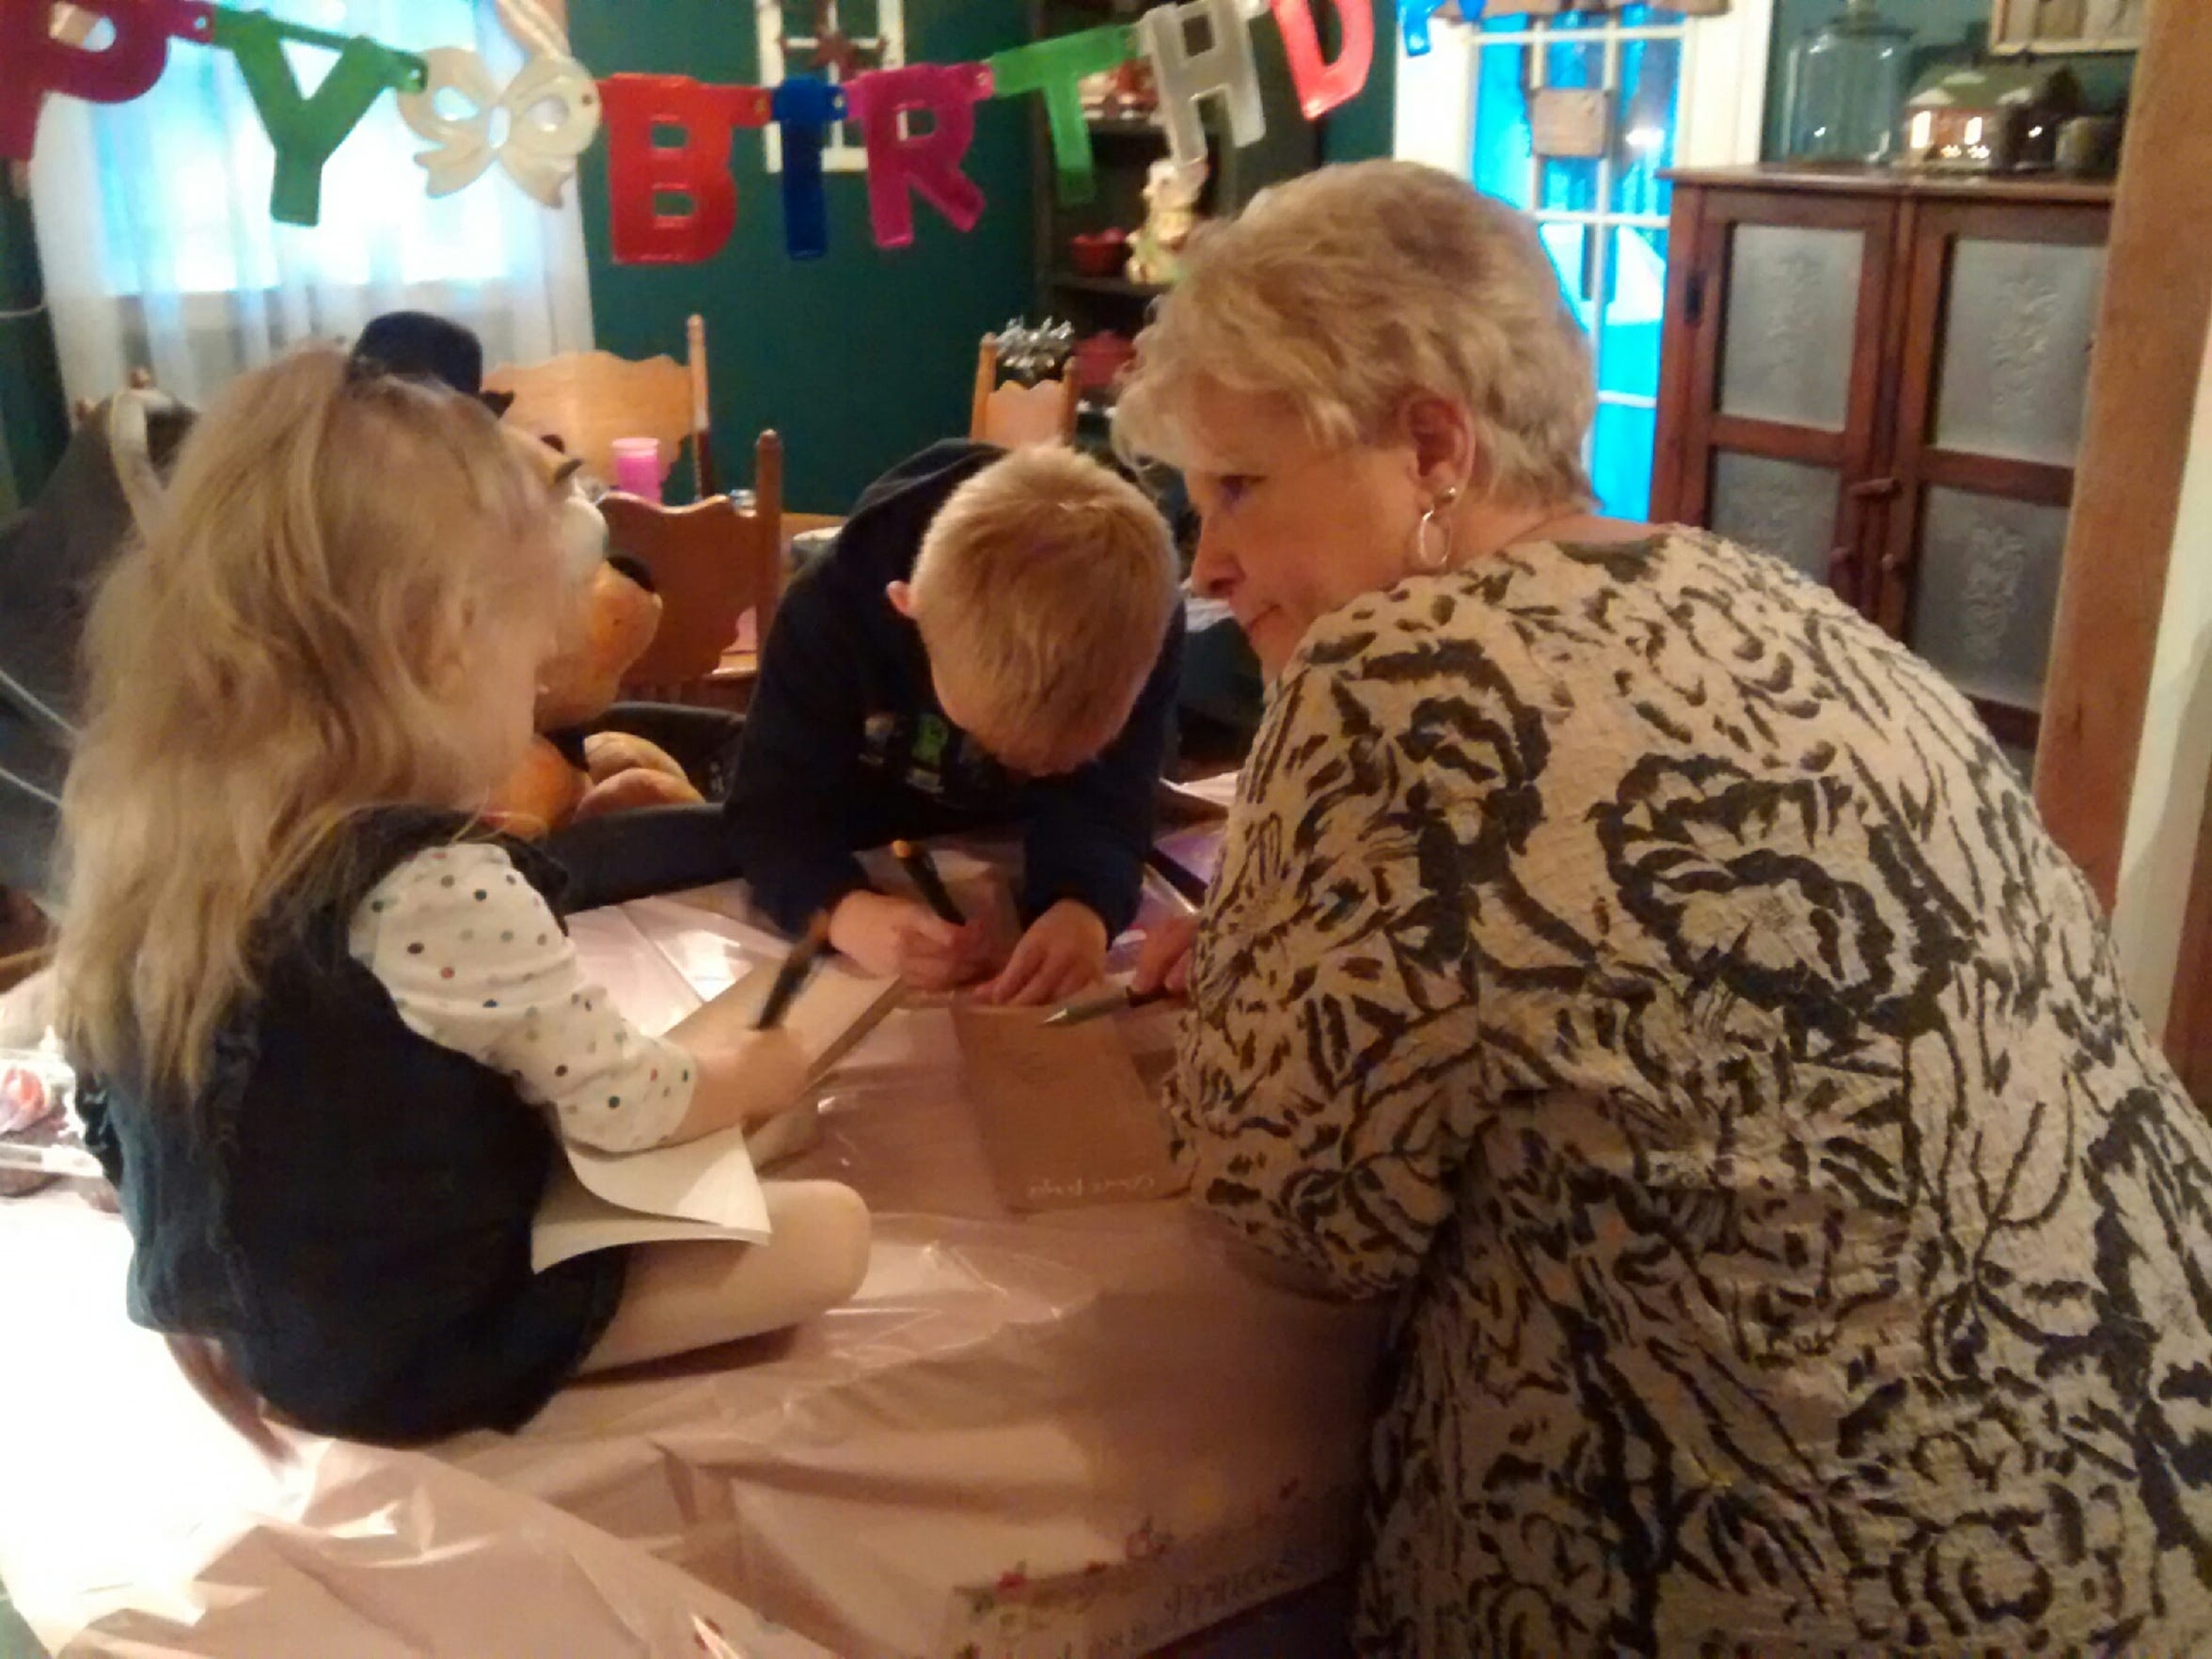 Cathy Sterrett spends time with her grandchildren at a birthday party.